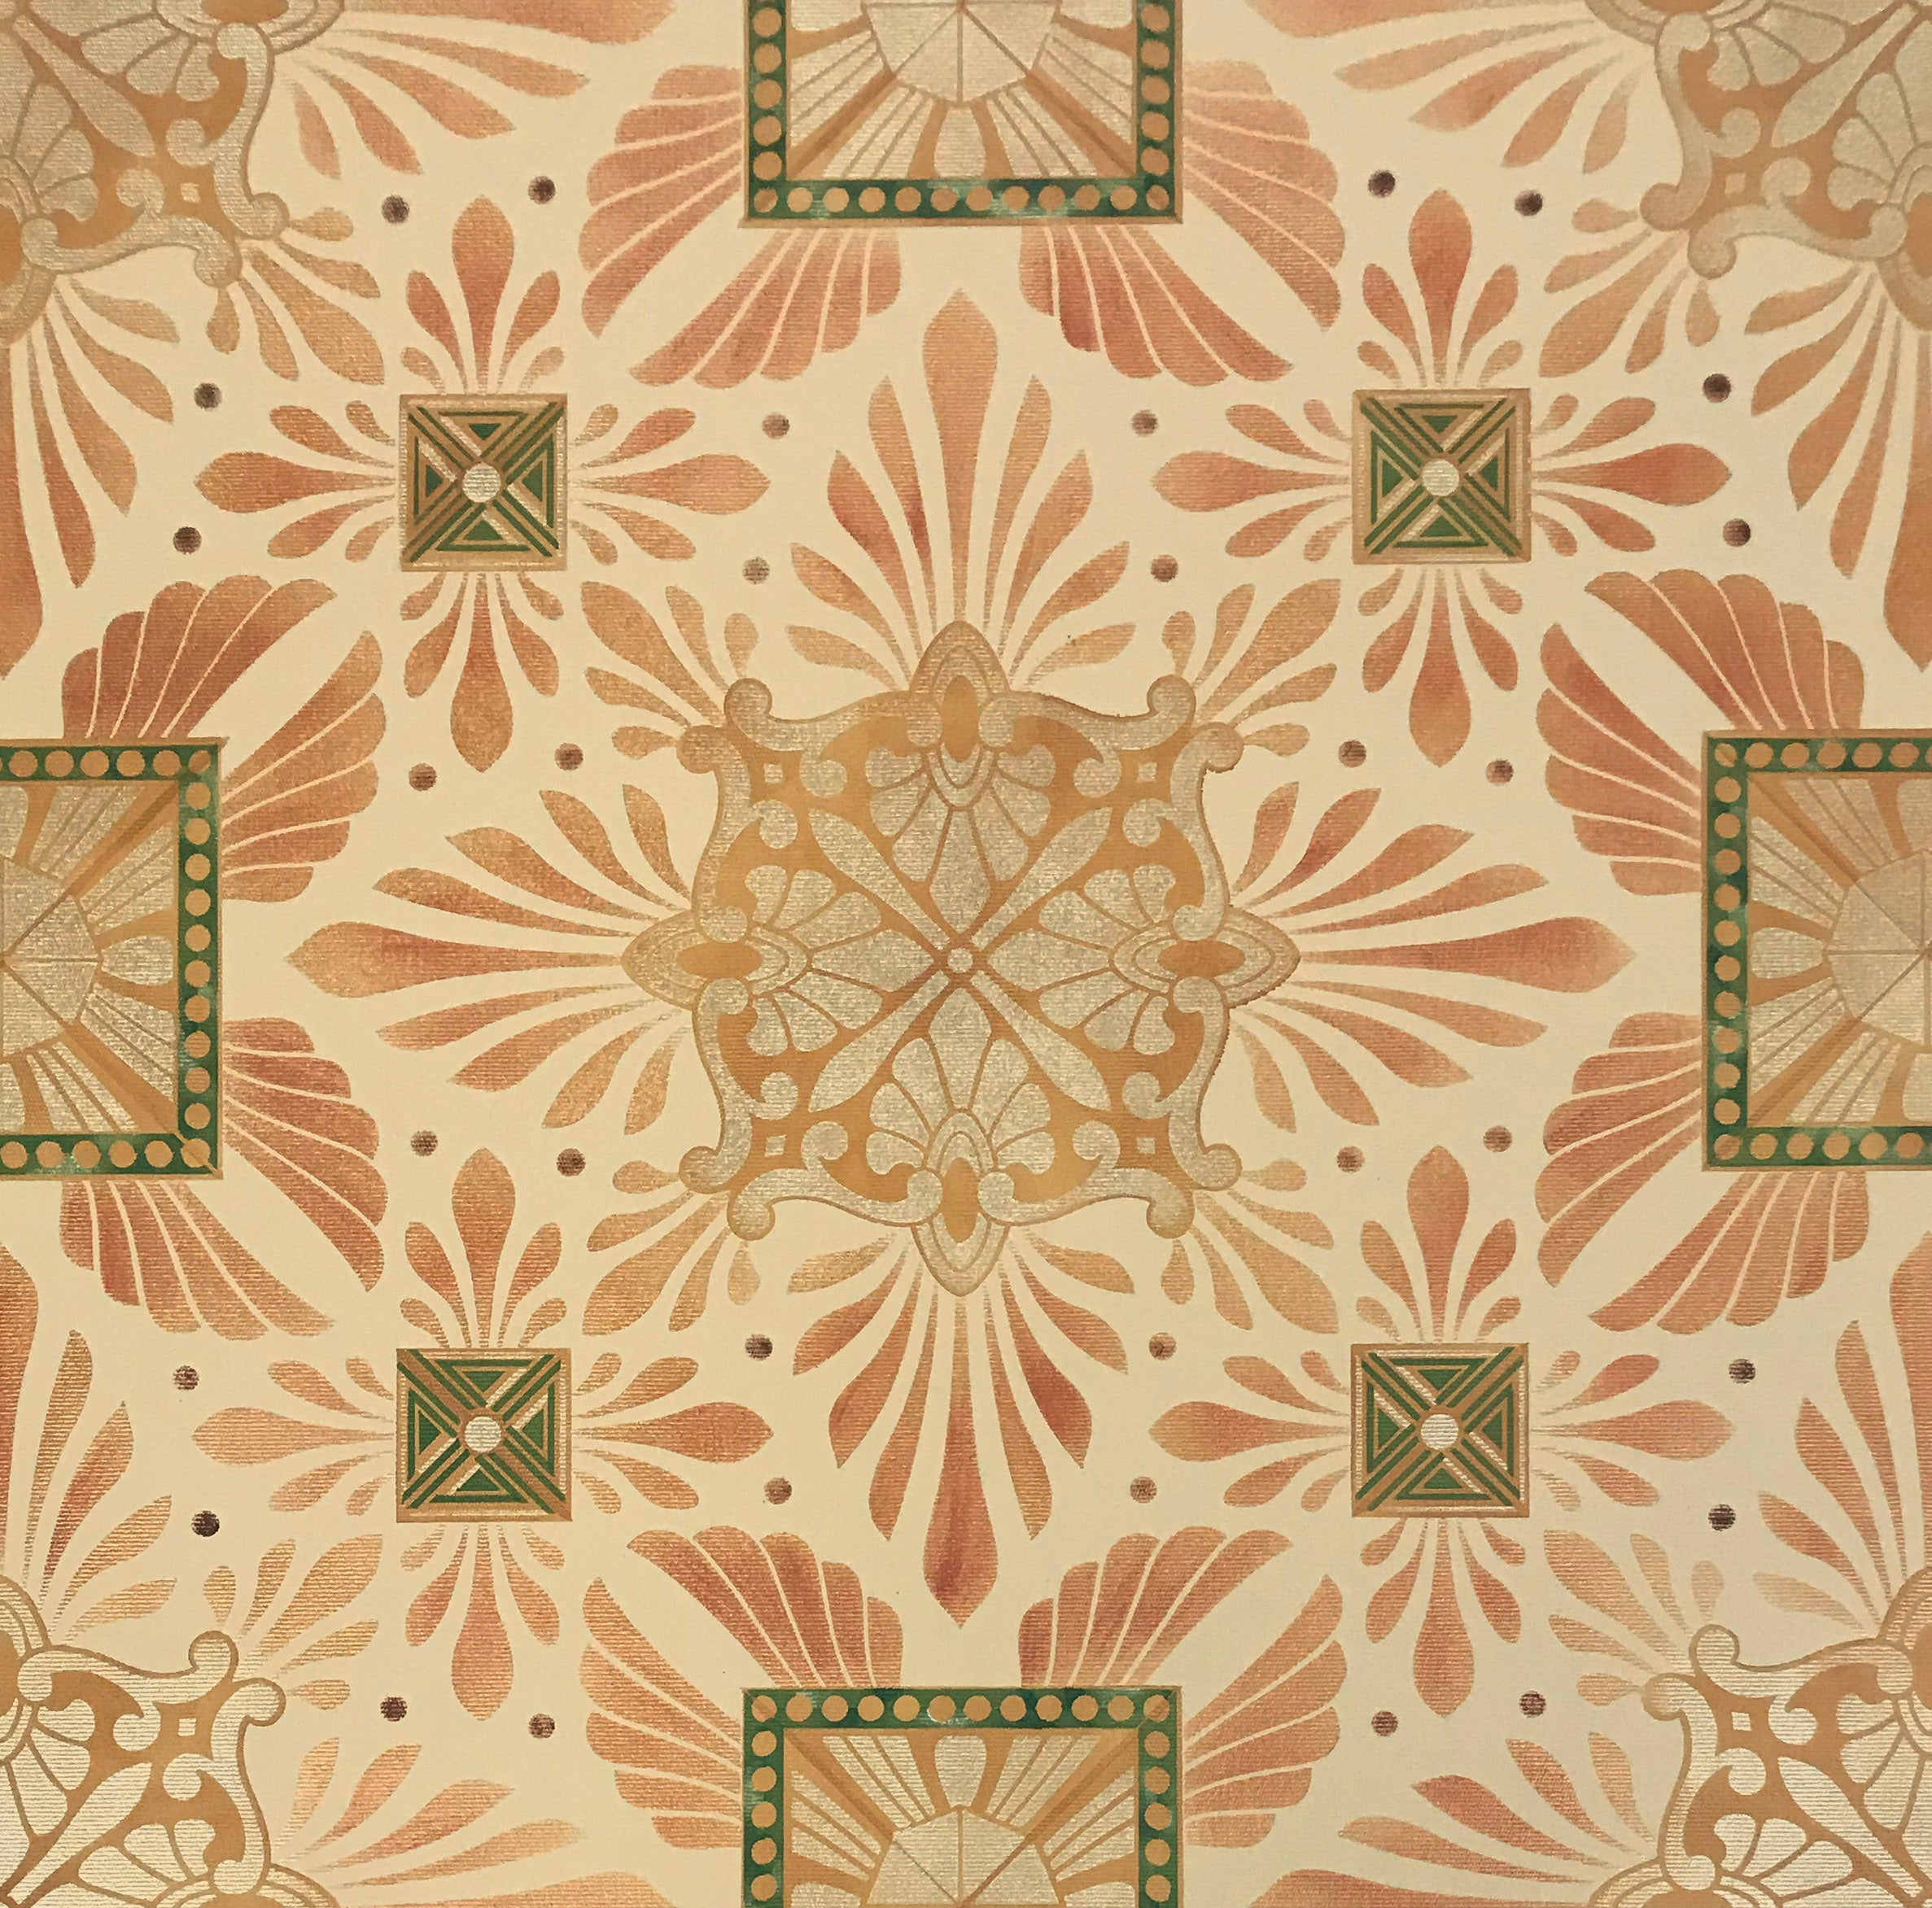 Close up of this floorcloth's deco center motifs, based on a design by Christopher Dresser.